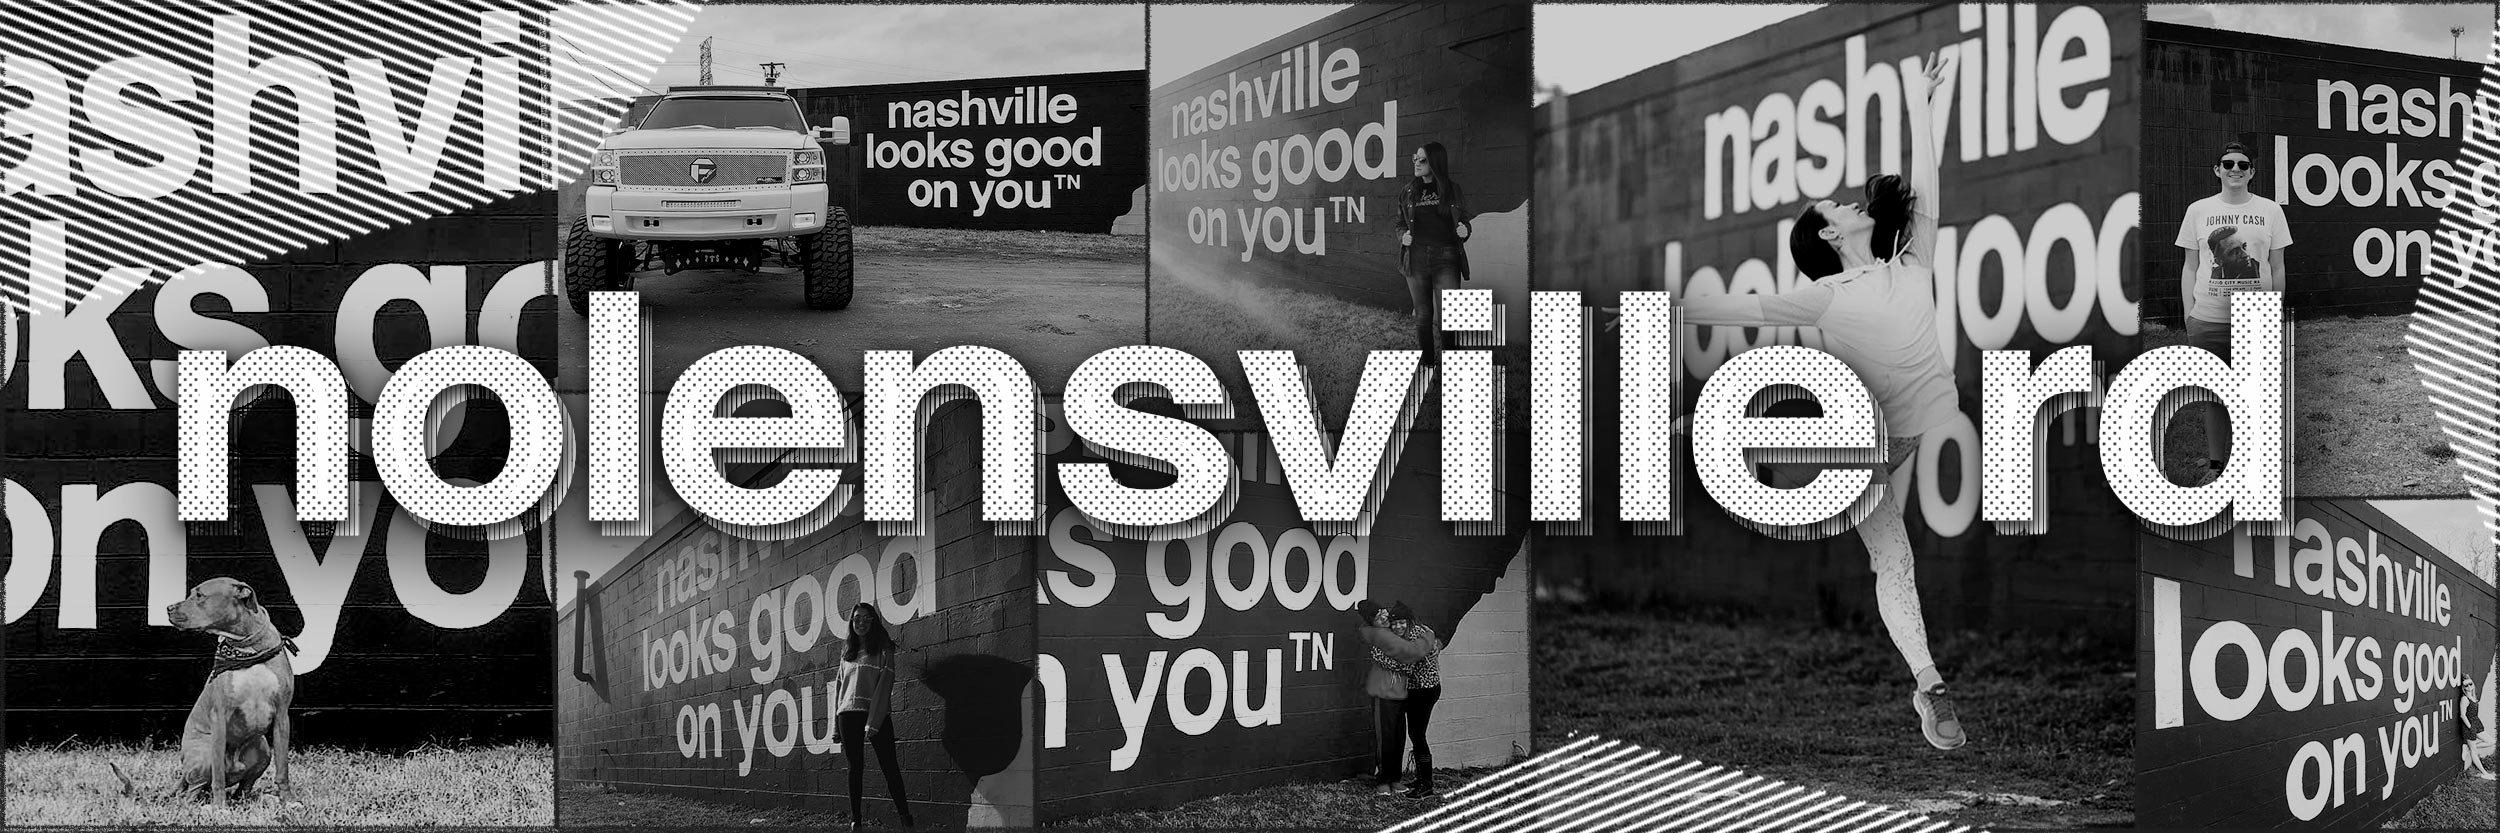 nashville looks good on you mural location nolensville rd nashville murals tennessee